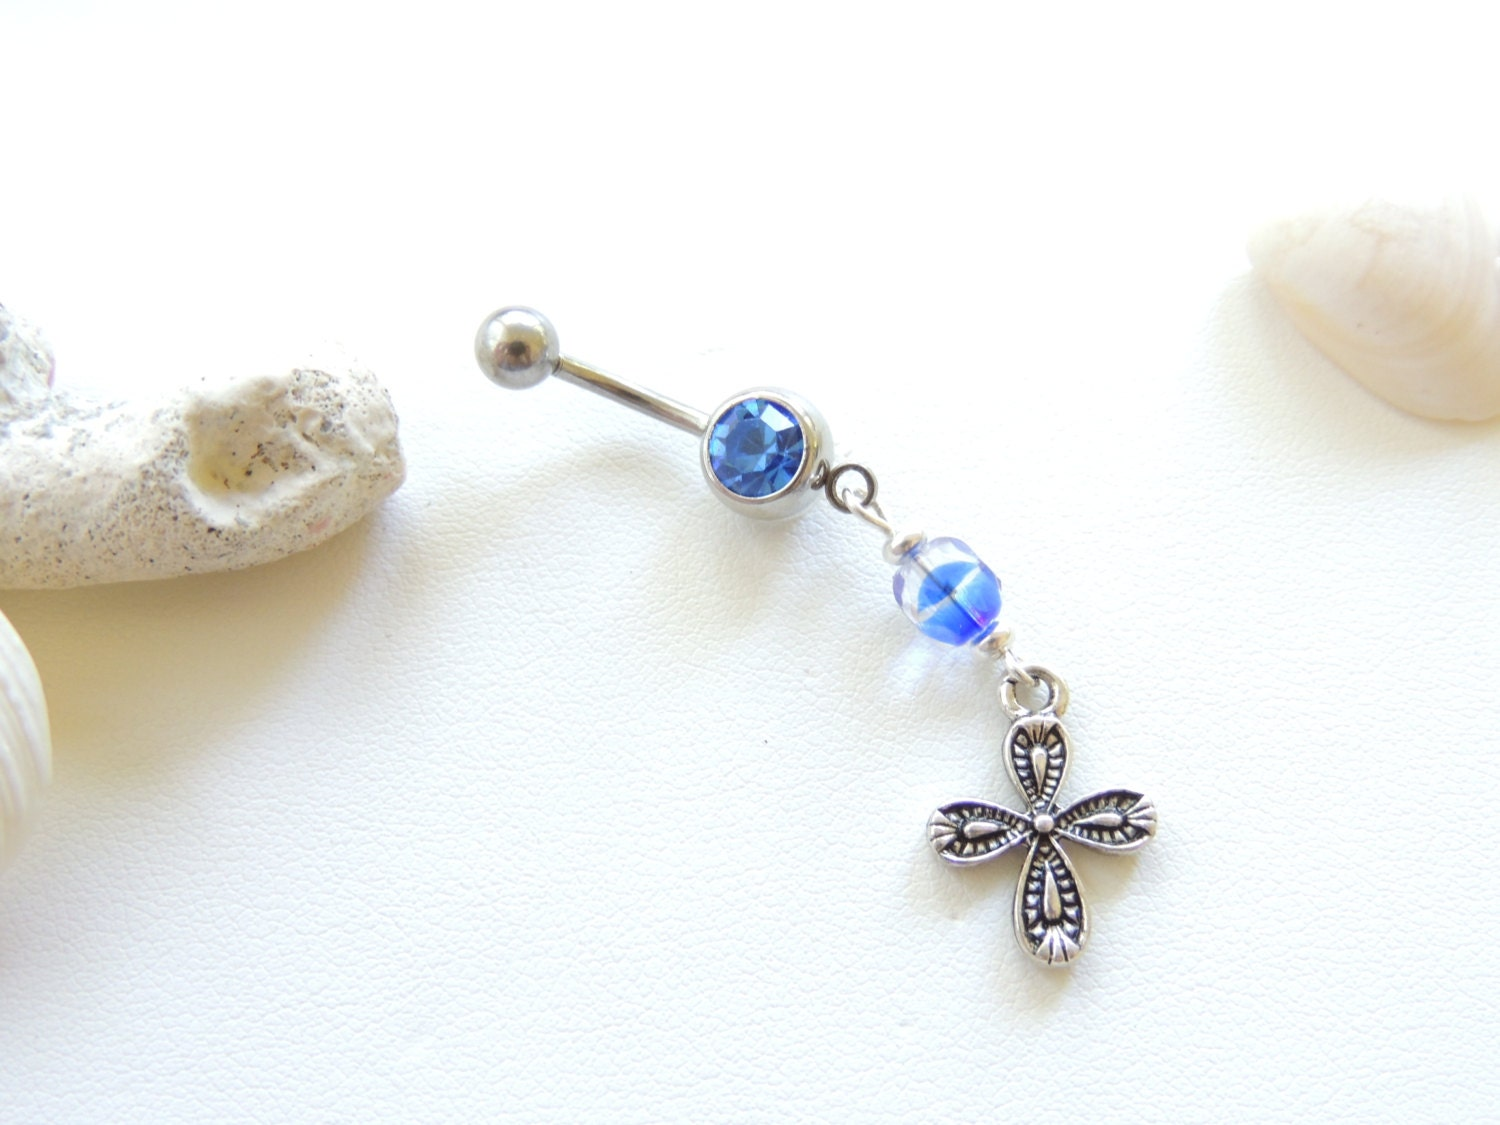 Cross belly button ring-7007